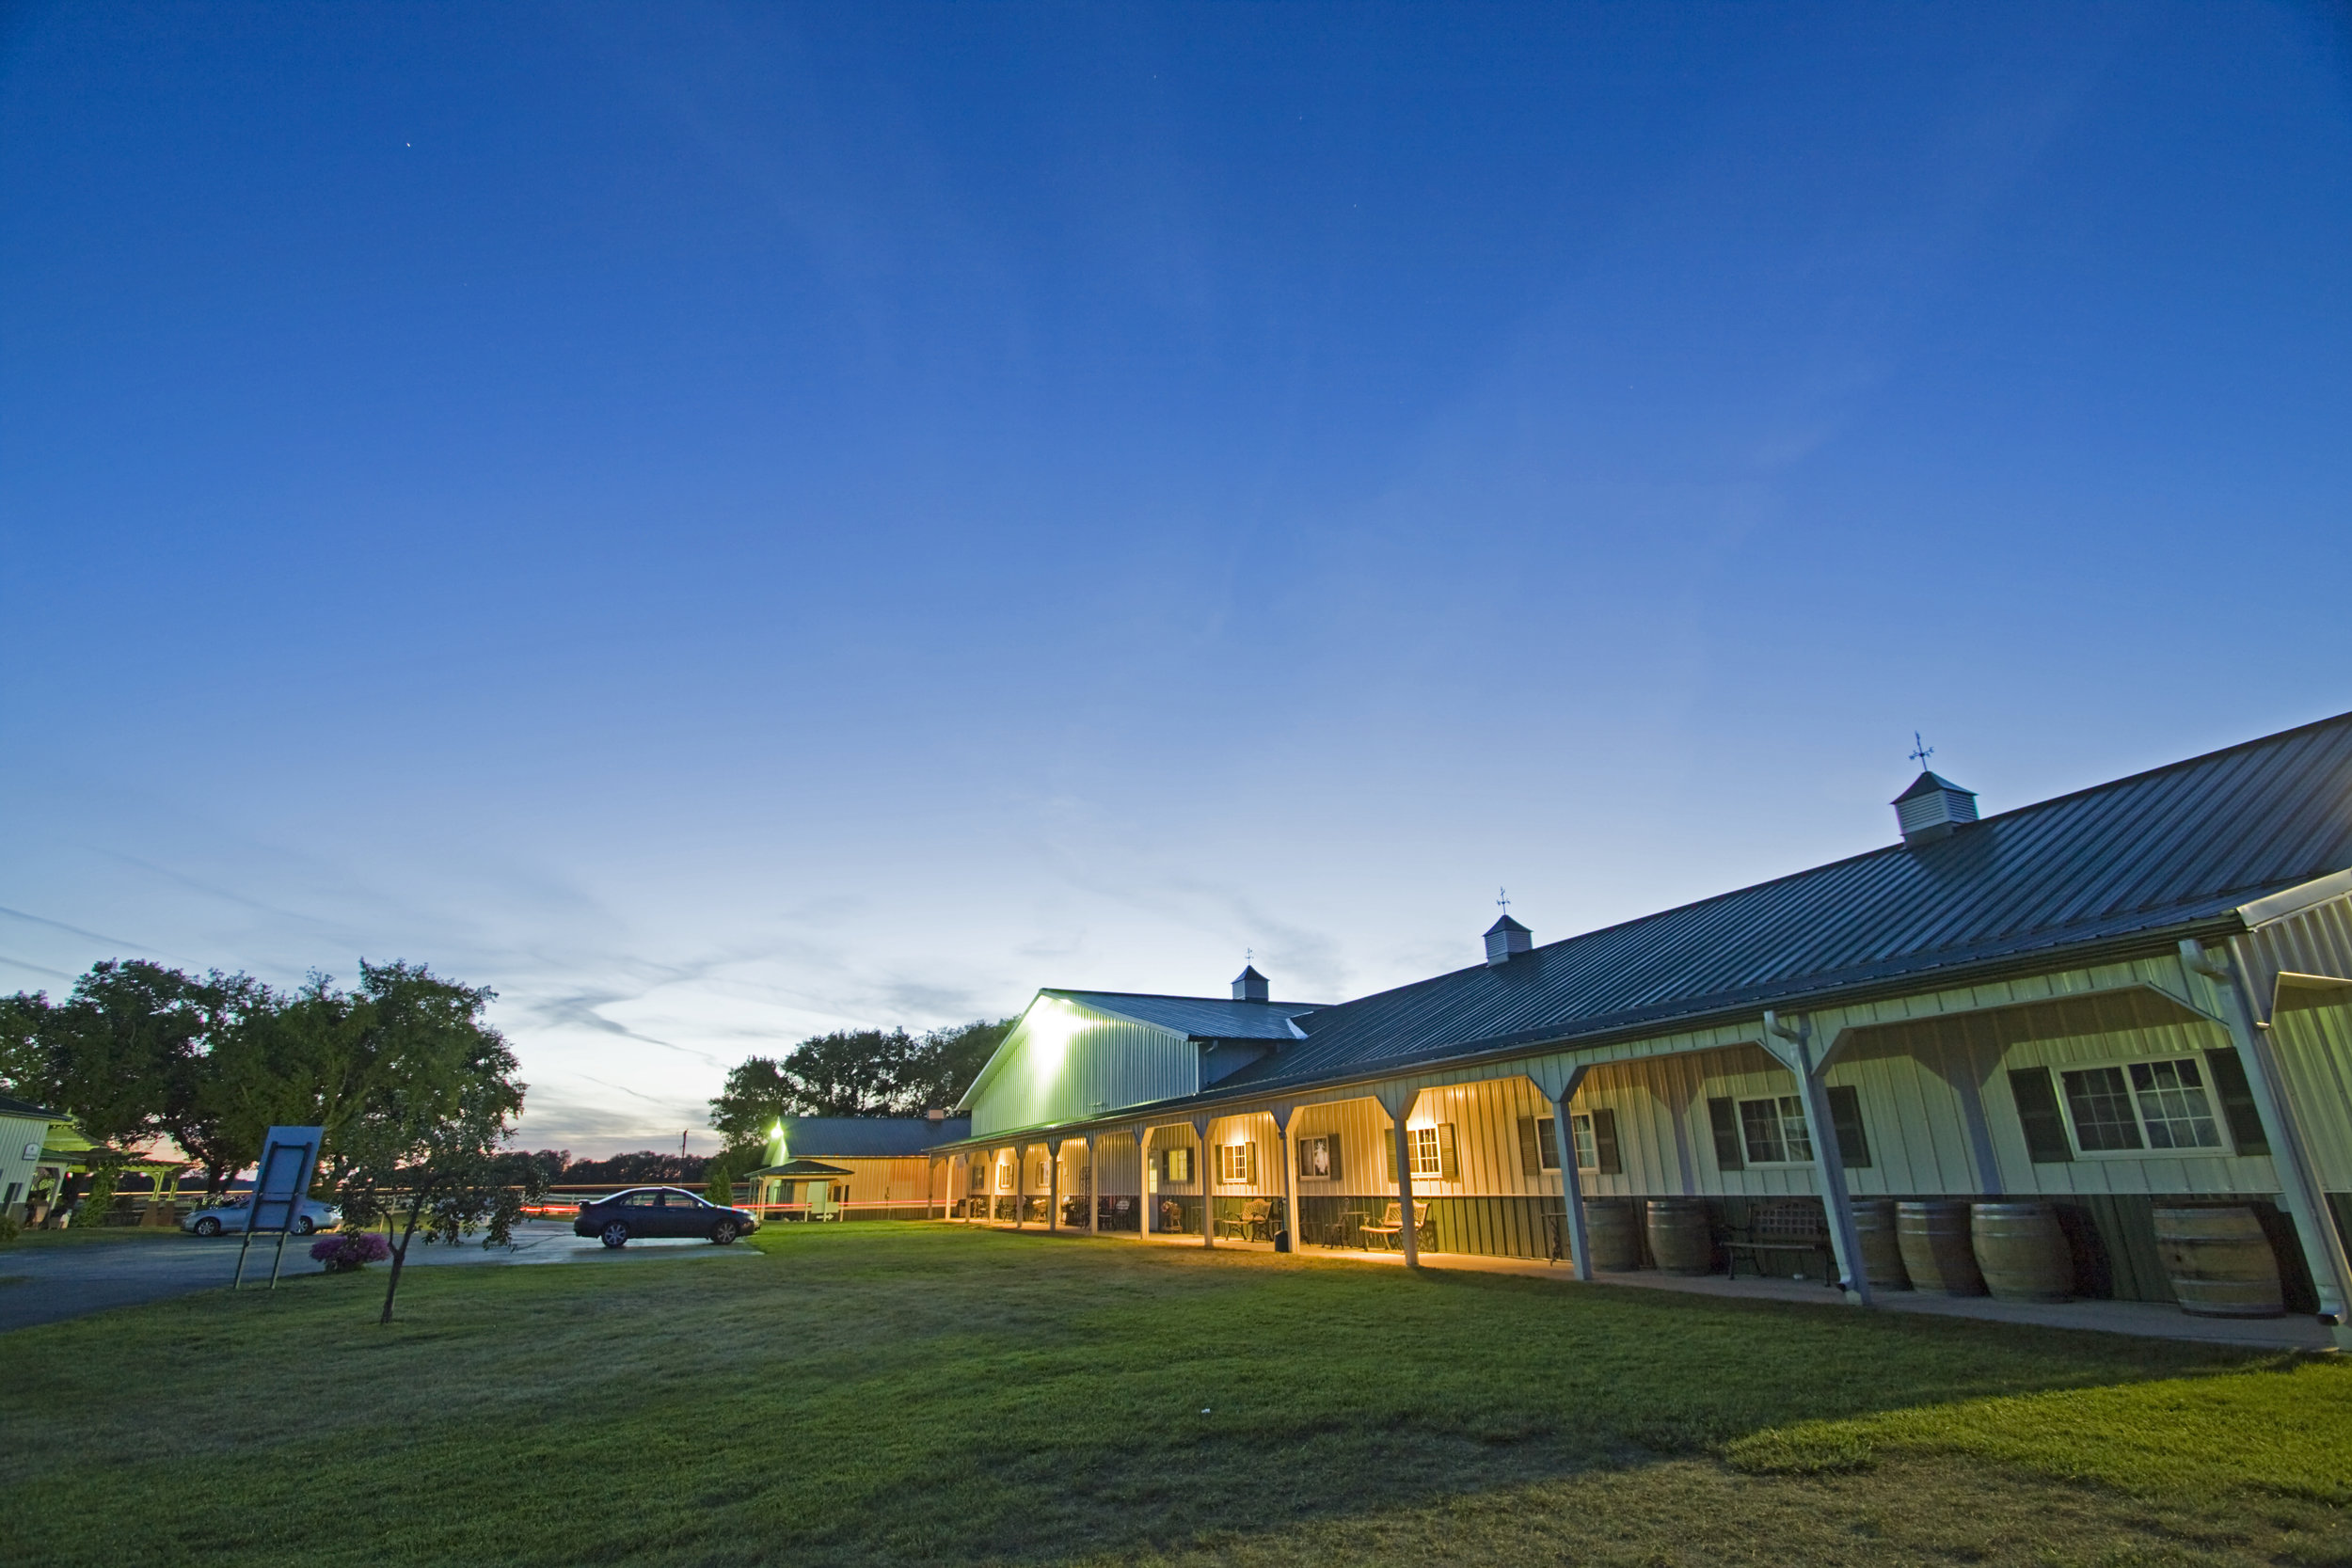 THE GRAND STABLES EVENT CENTER -